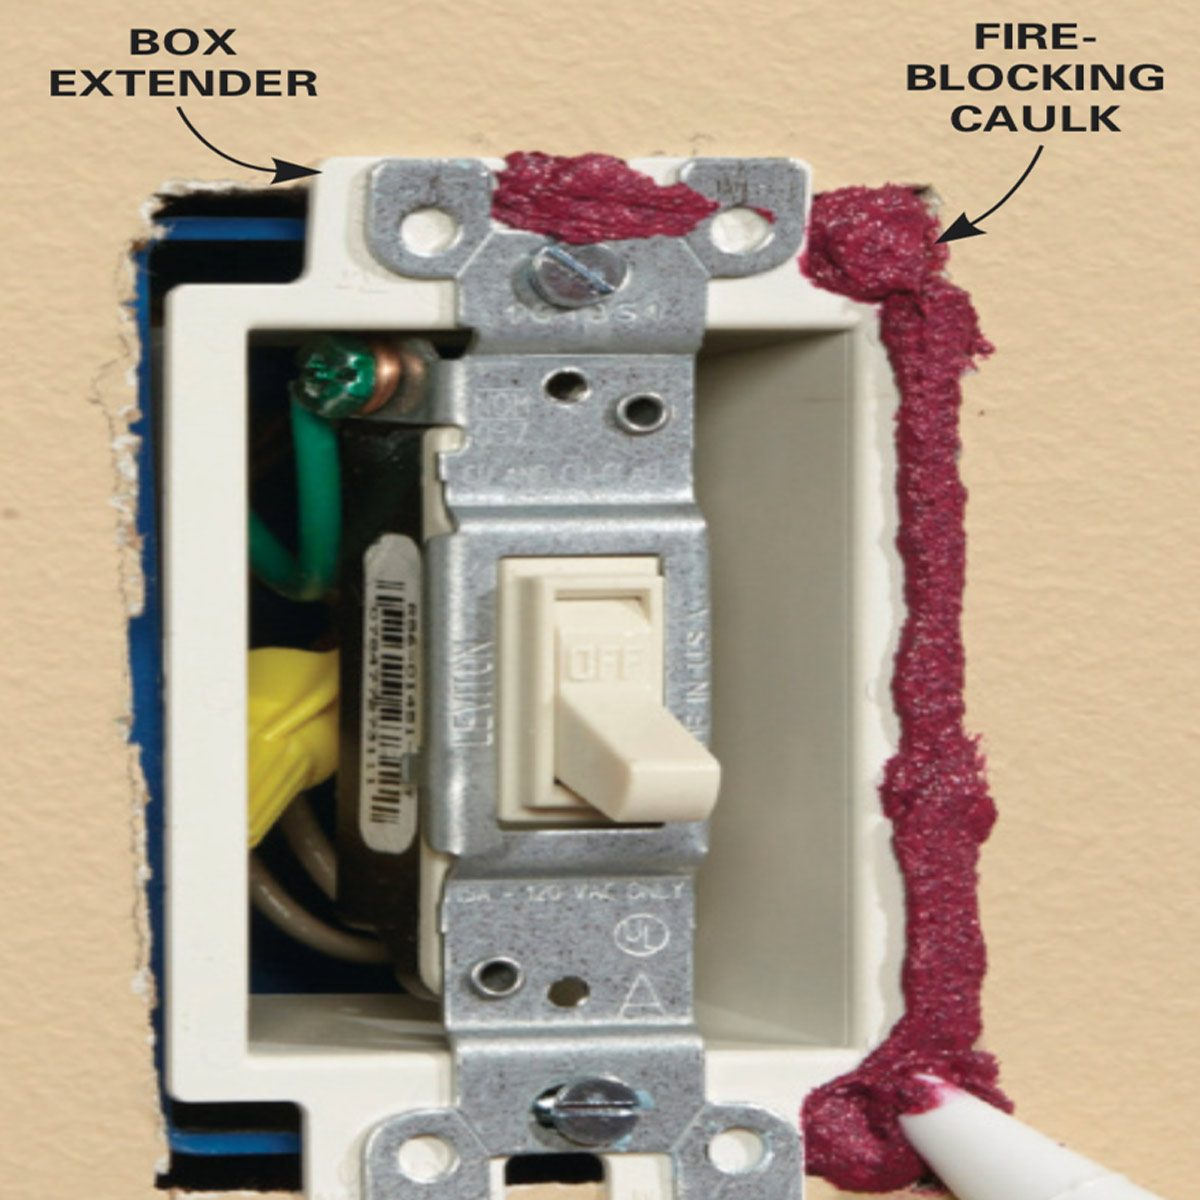 Outlet Insulation Stops Cold Air Coming Through Electrical Outlets Can Your Protect Against A House Fire Squirt Caulk Between The Box Extender And Wall Smooth Bead With Wet Finger